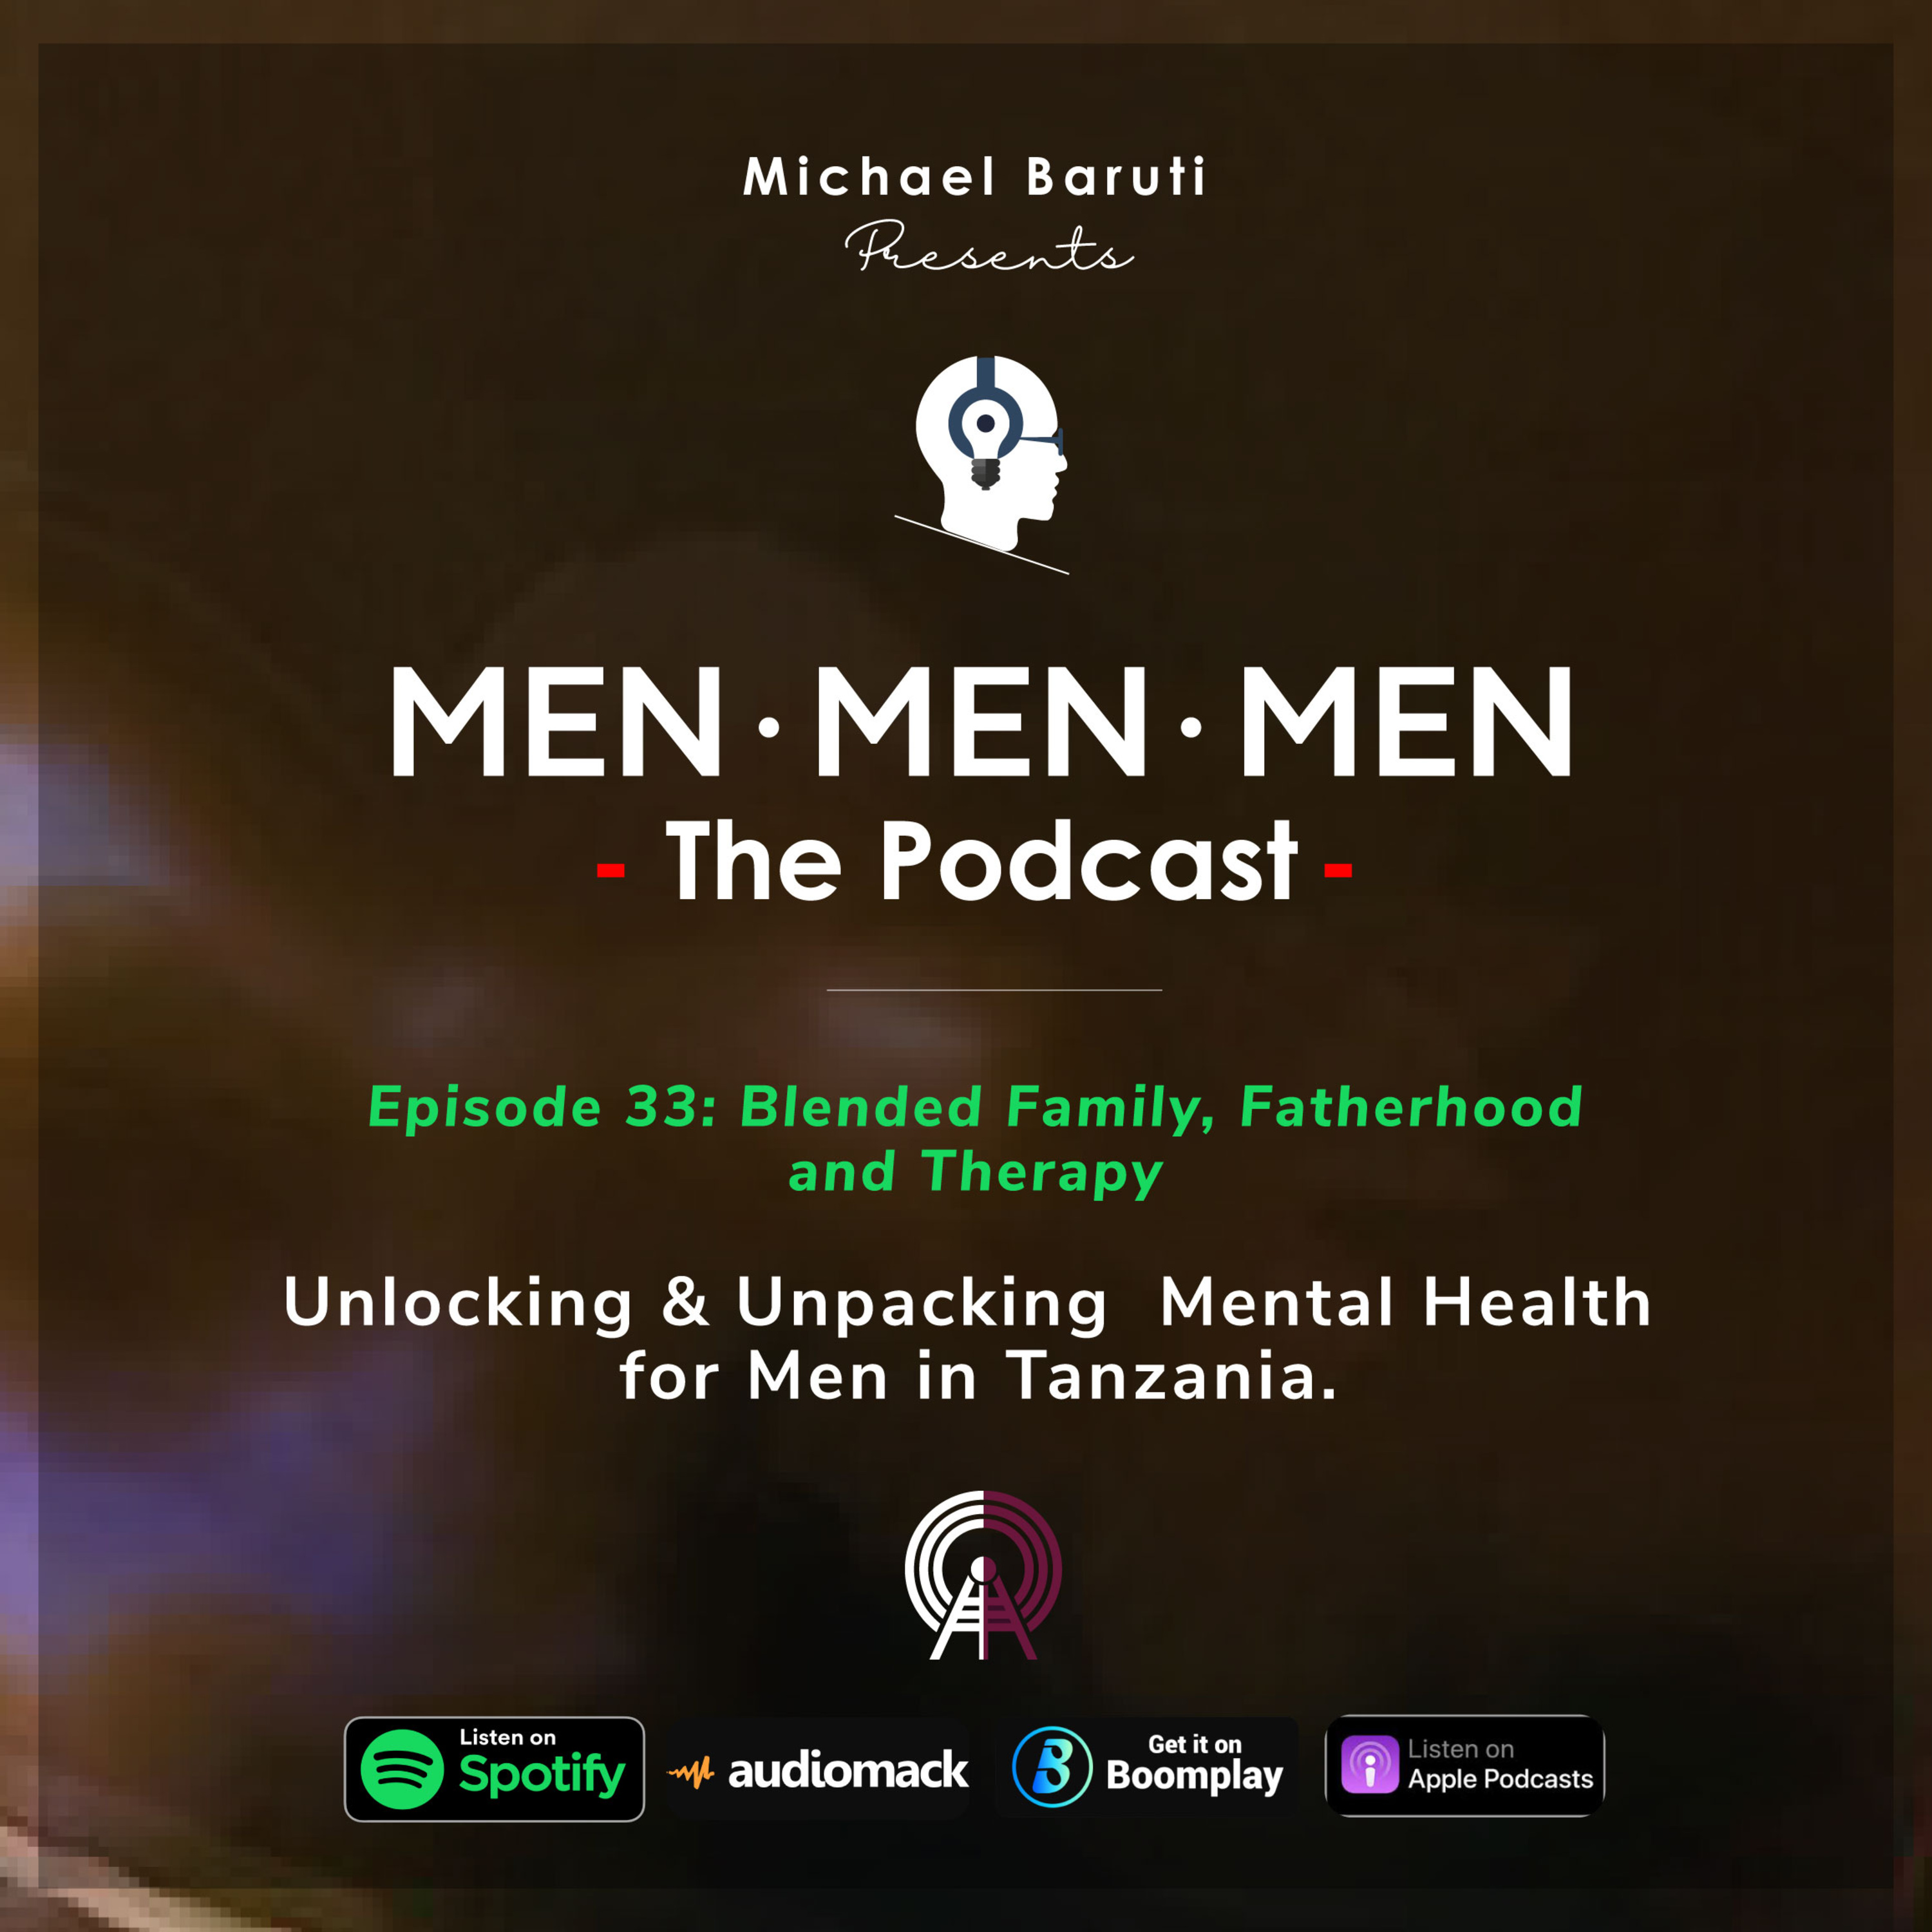 Men The Podcast - Ep 33 - Blended Family, Fatherhood & Therapy